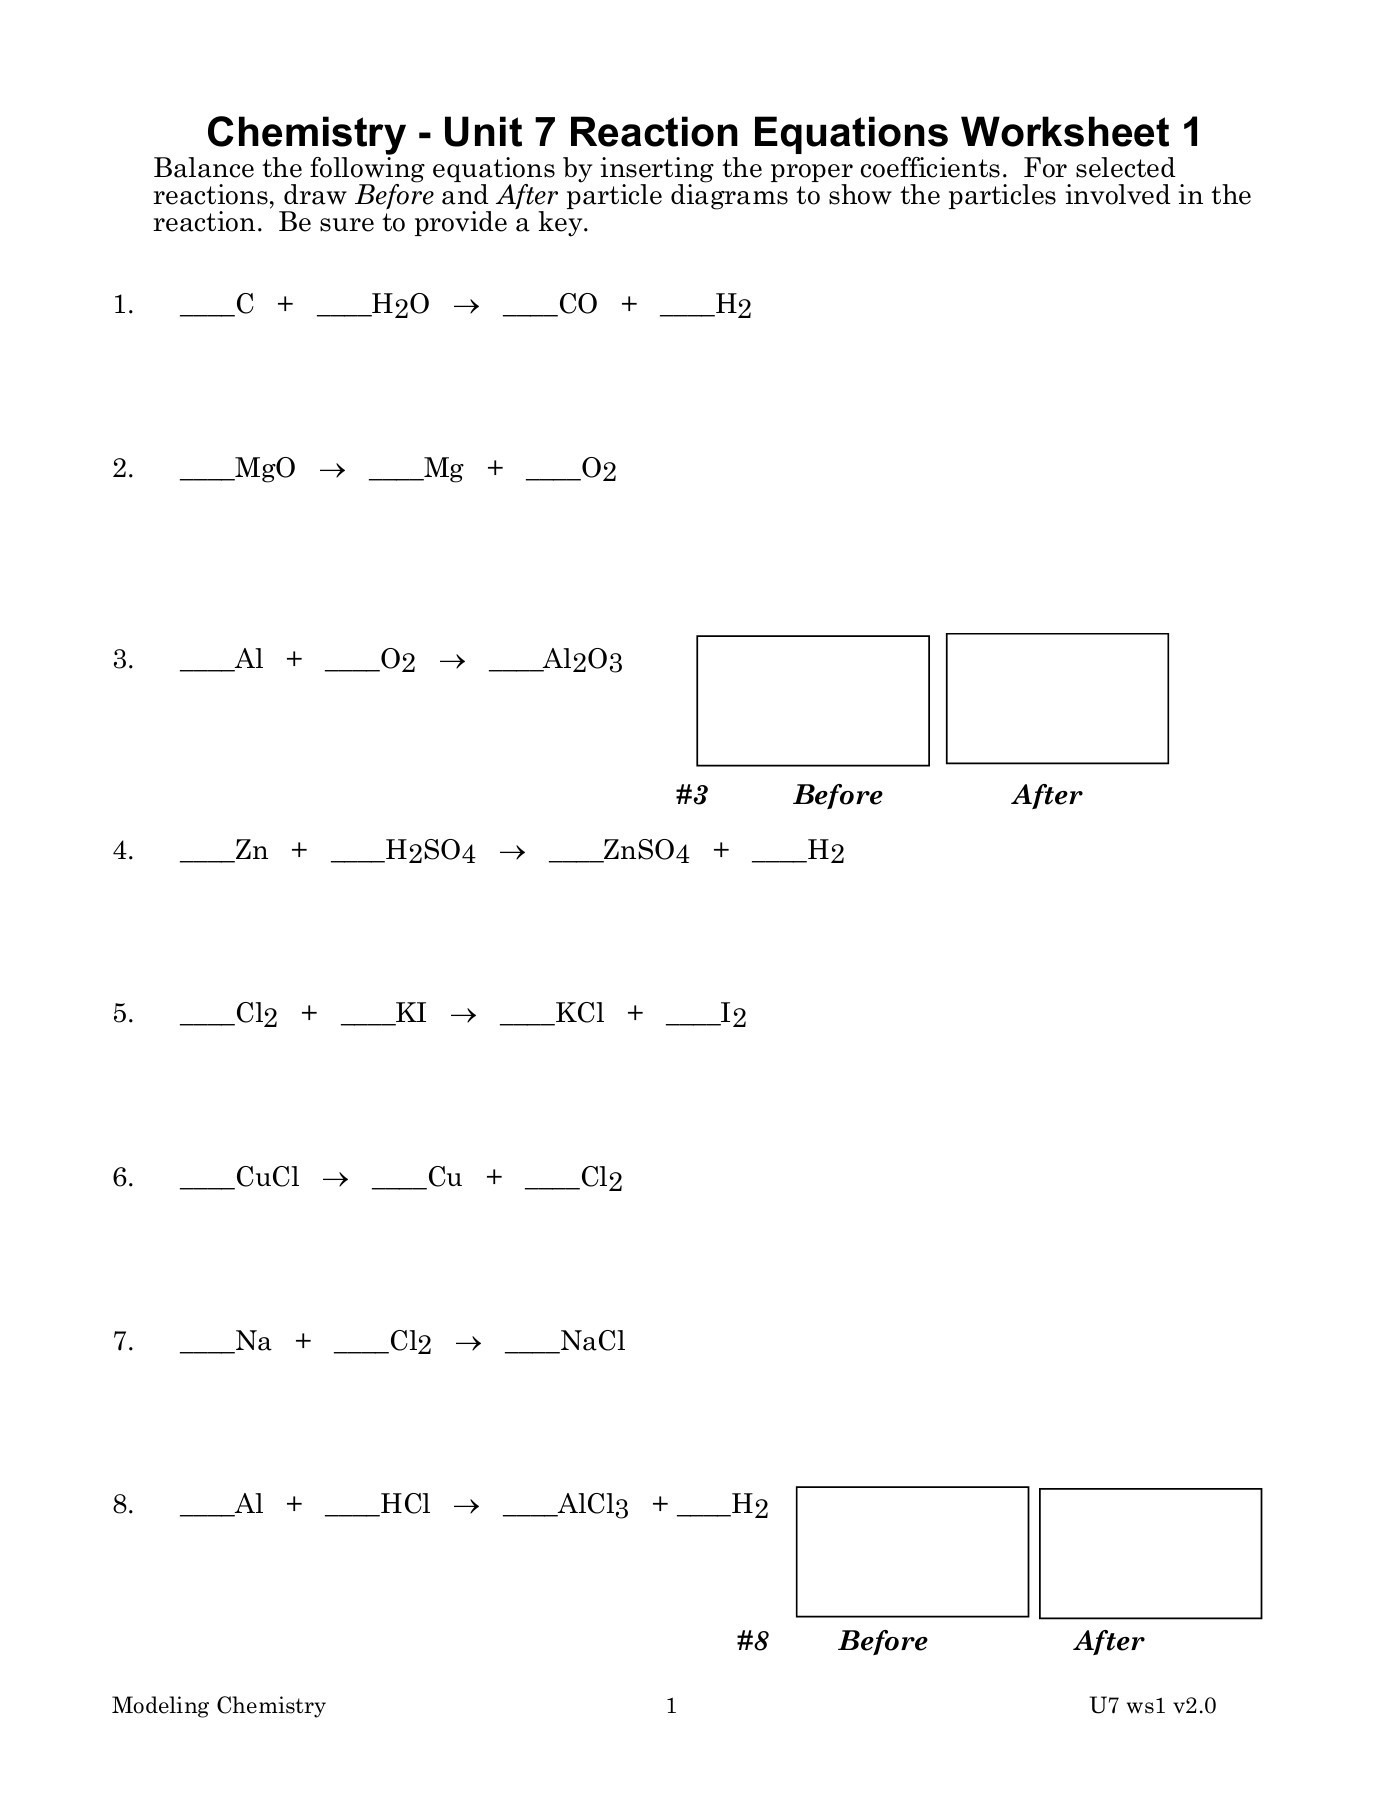 Chemistry Unit 7 Reaction Equations Worksheet 1 Pages 1